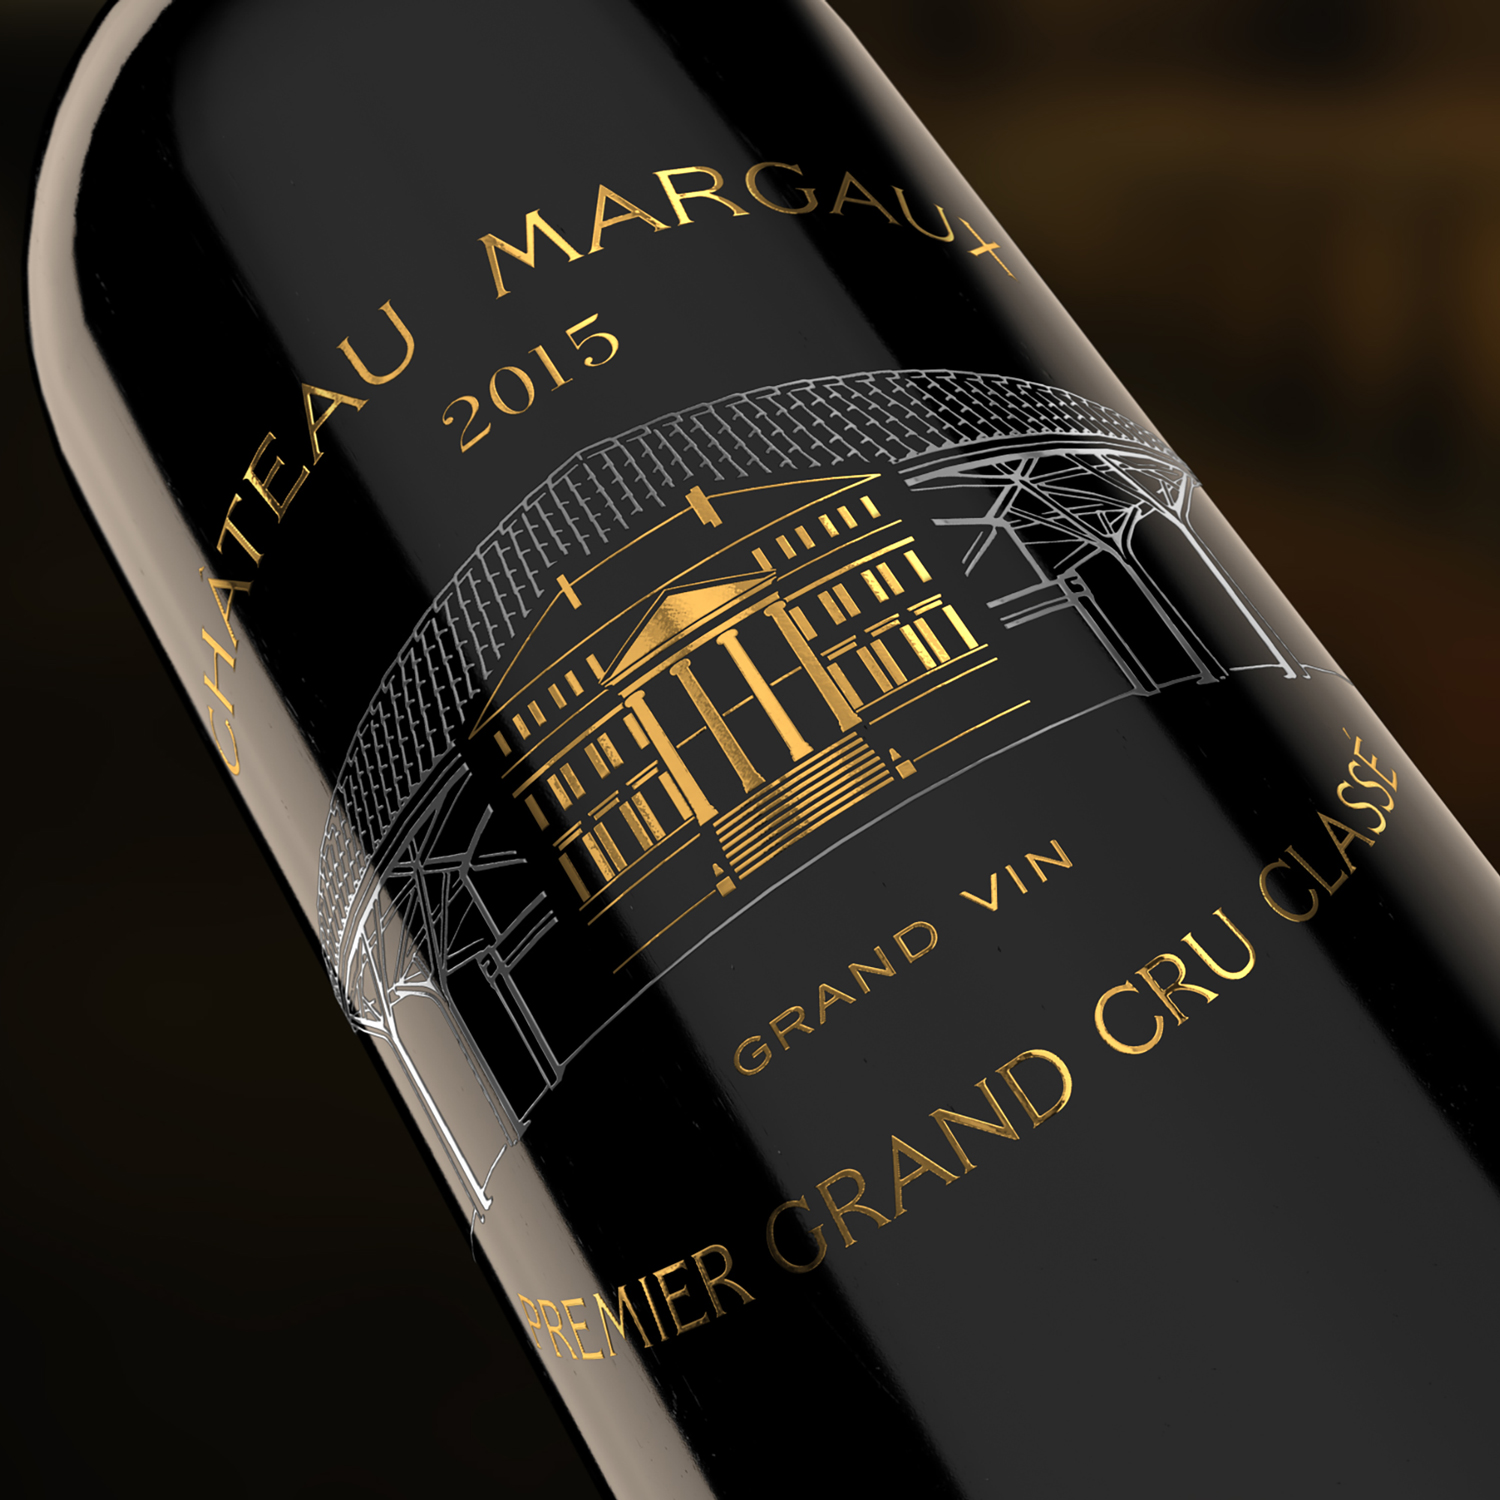 chateau-margaux-2015-millesime-exception-bouteille-le5ruedosne-luxury-design-packaging-branding-agency